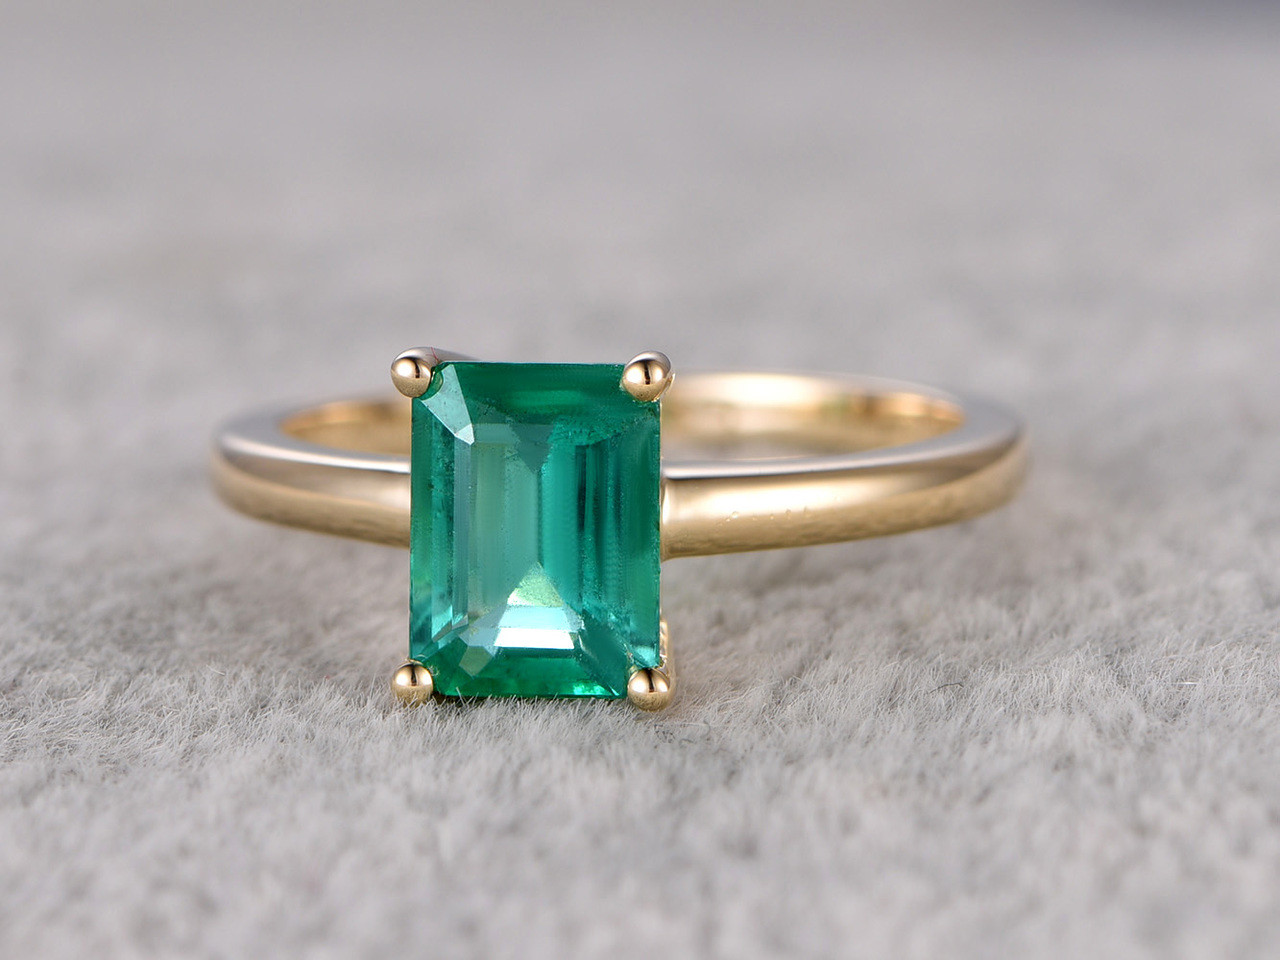 6x8mm Emerald Cut Natural Emerald Engagement Ring 14k Yellow Gold Wedding Ring Antique